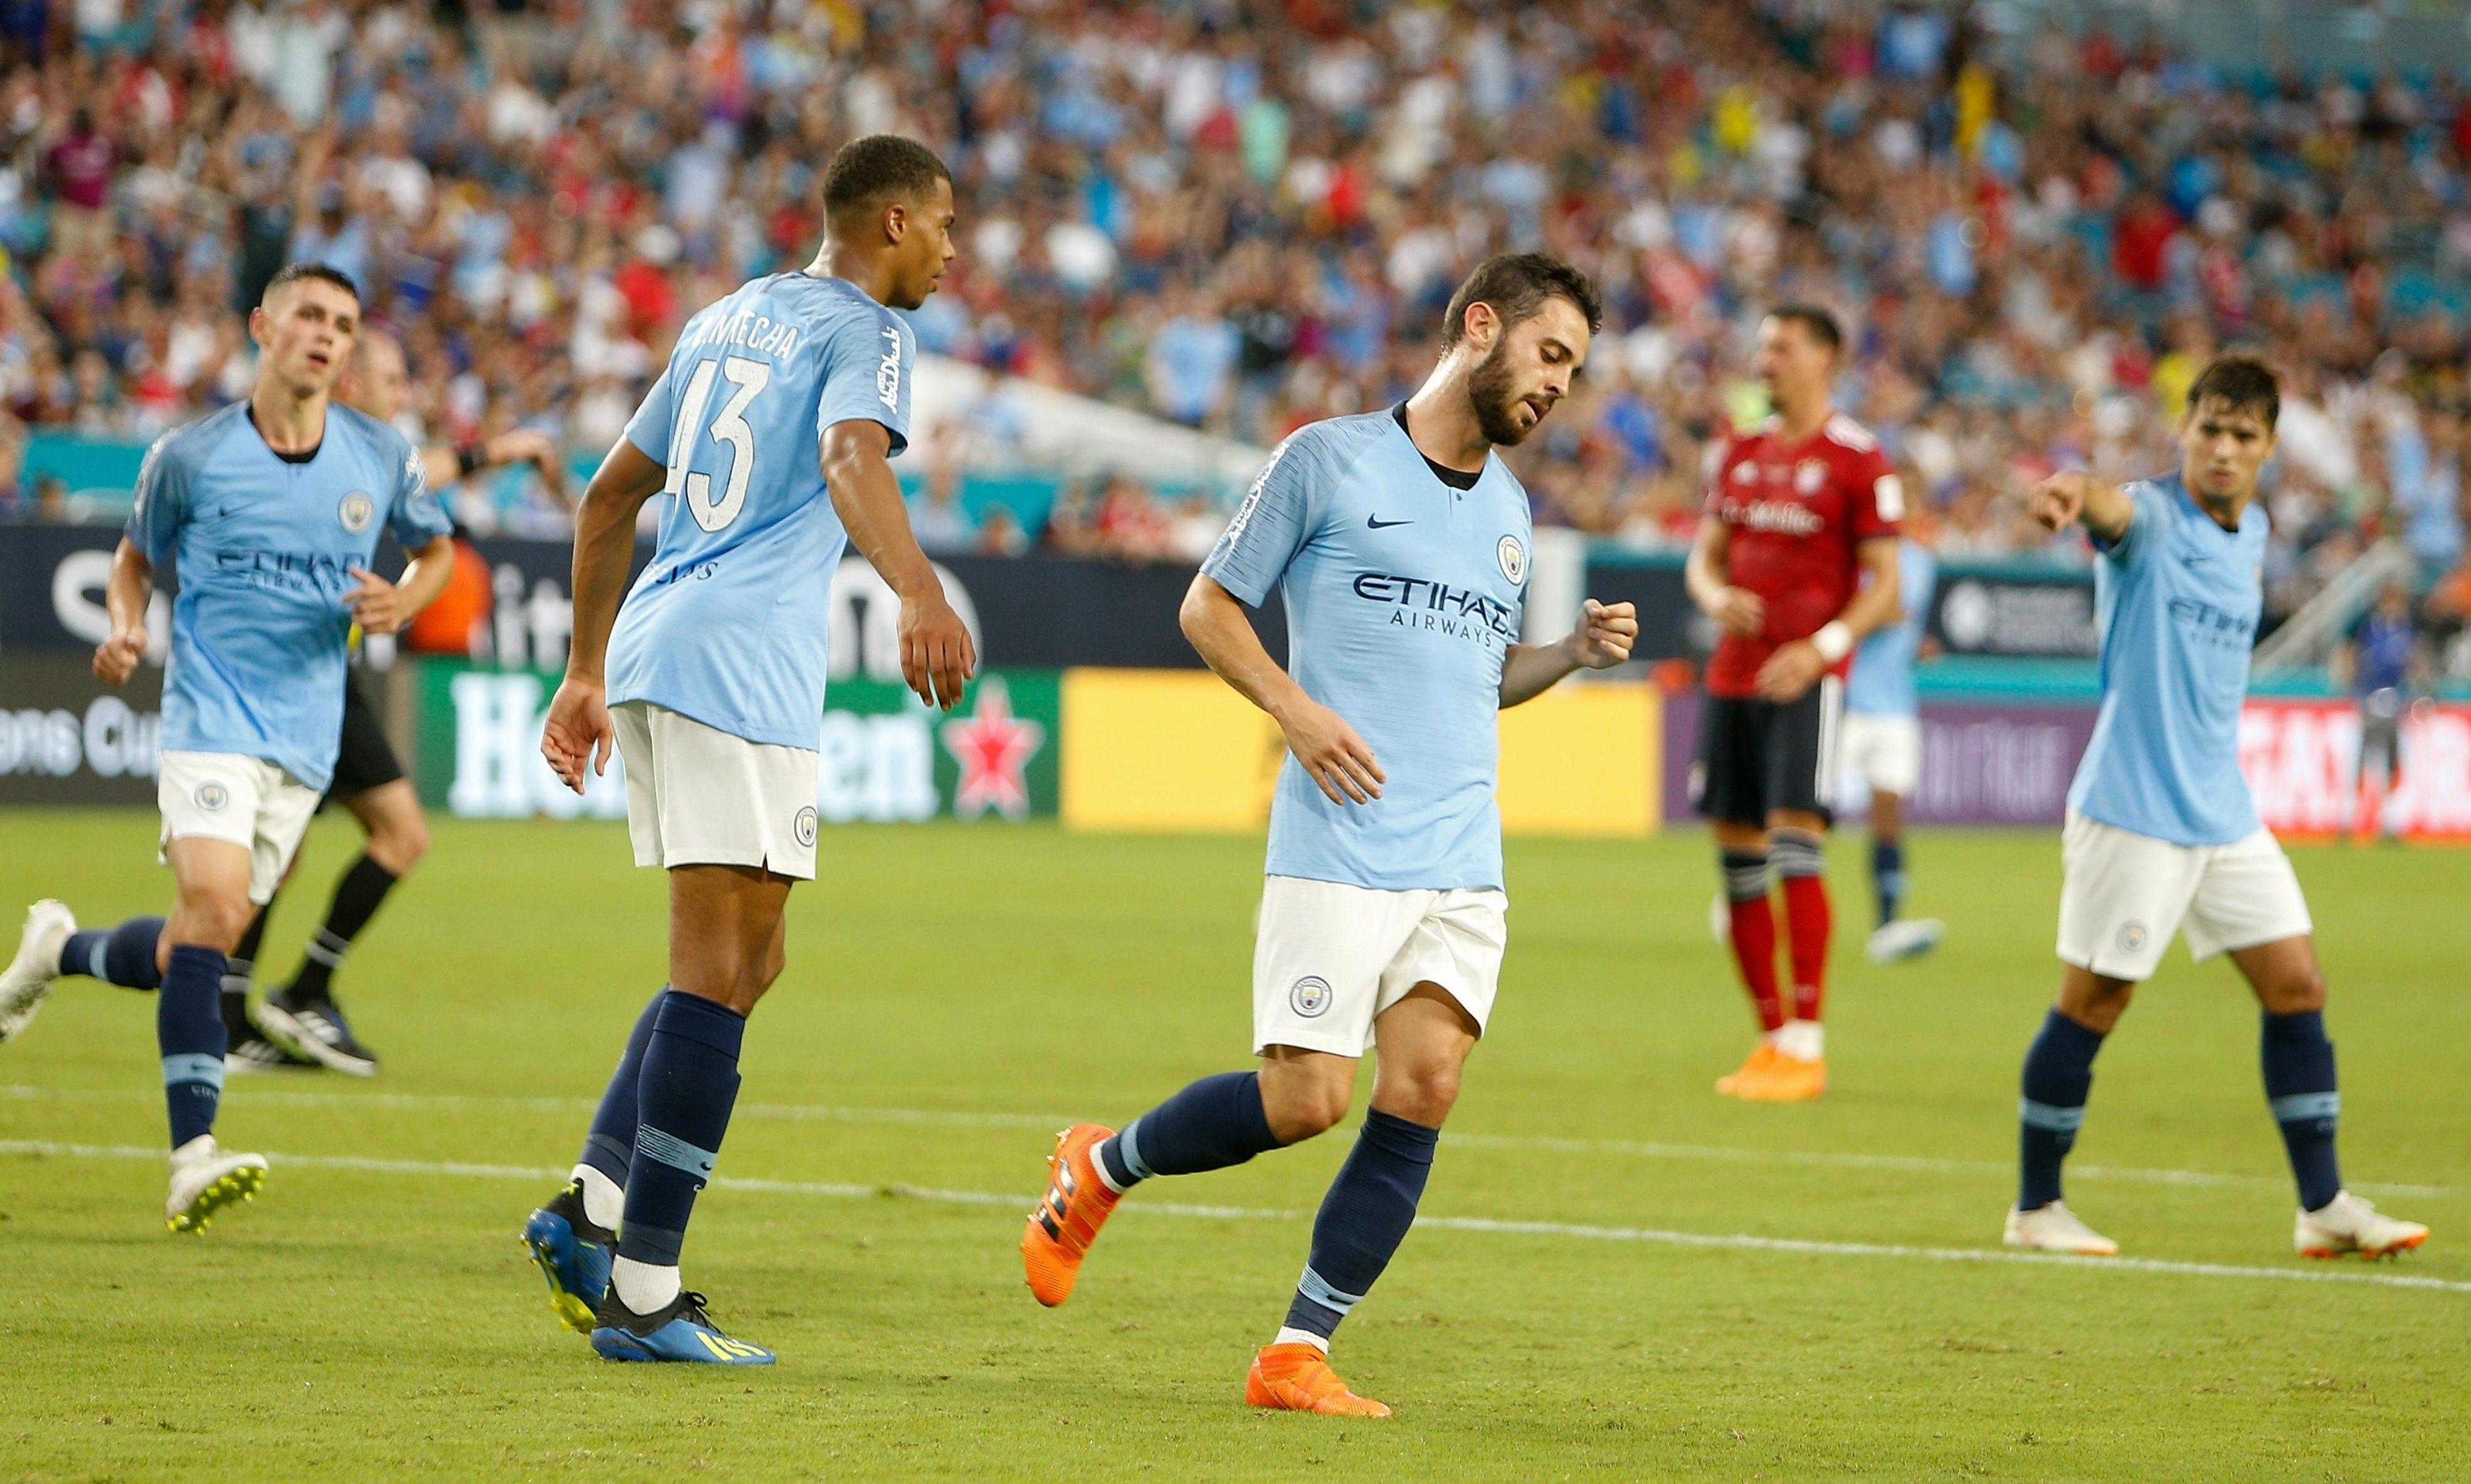 Bernardo Silva scored twice to lead a strong comeback from Manchester City in Miami